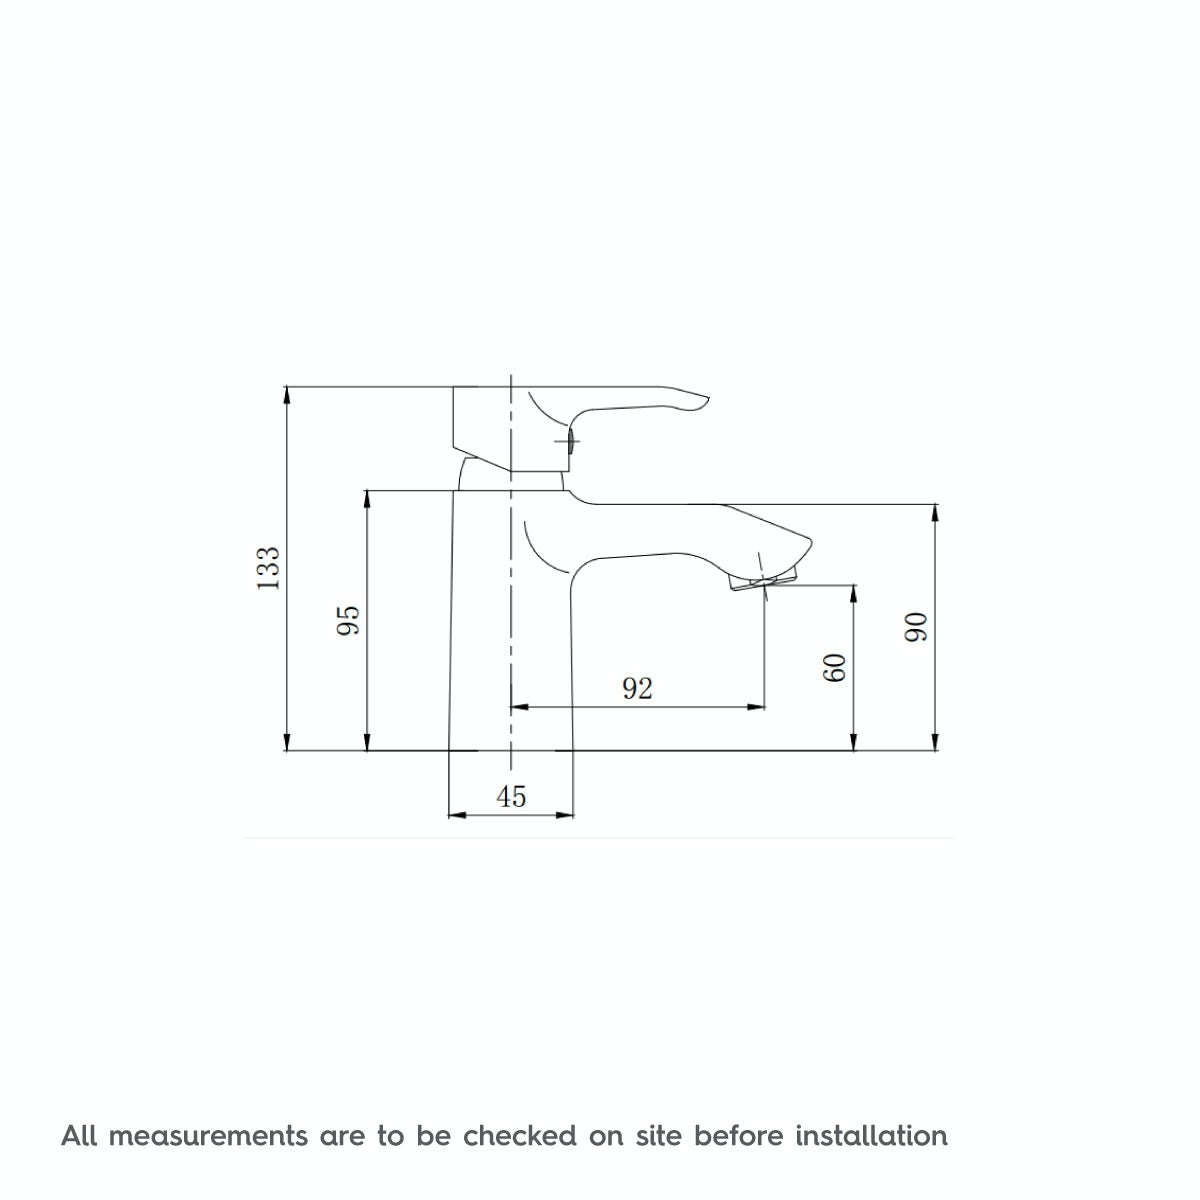 Dimensions for Orchard Wave basin mixer tap